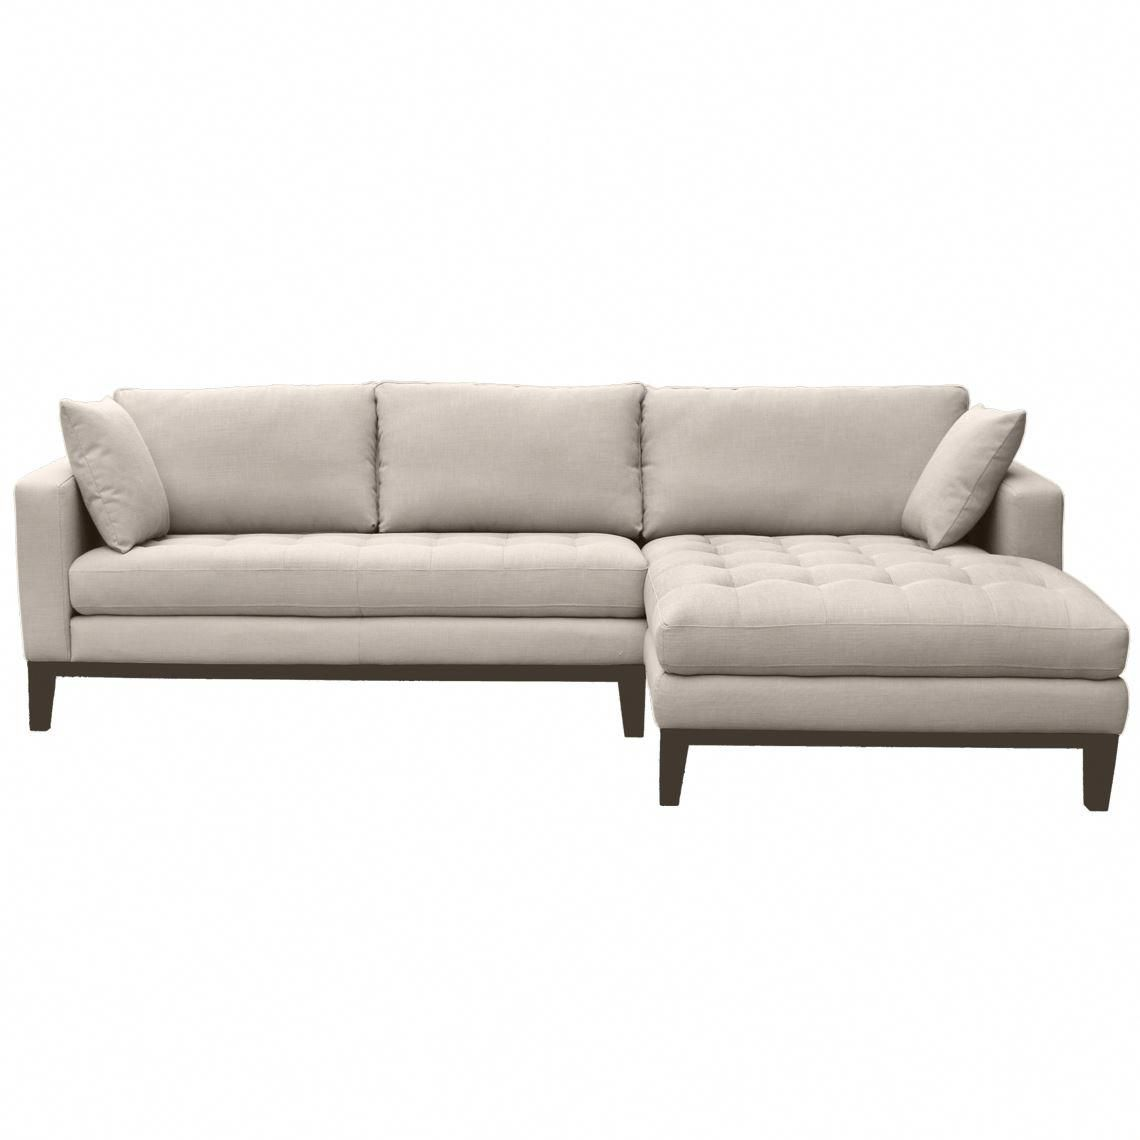 Freedom Furniture Lounges Furniture Buy Now Pay Later Budgetfurnitureandmattress Post